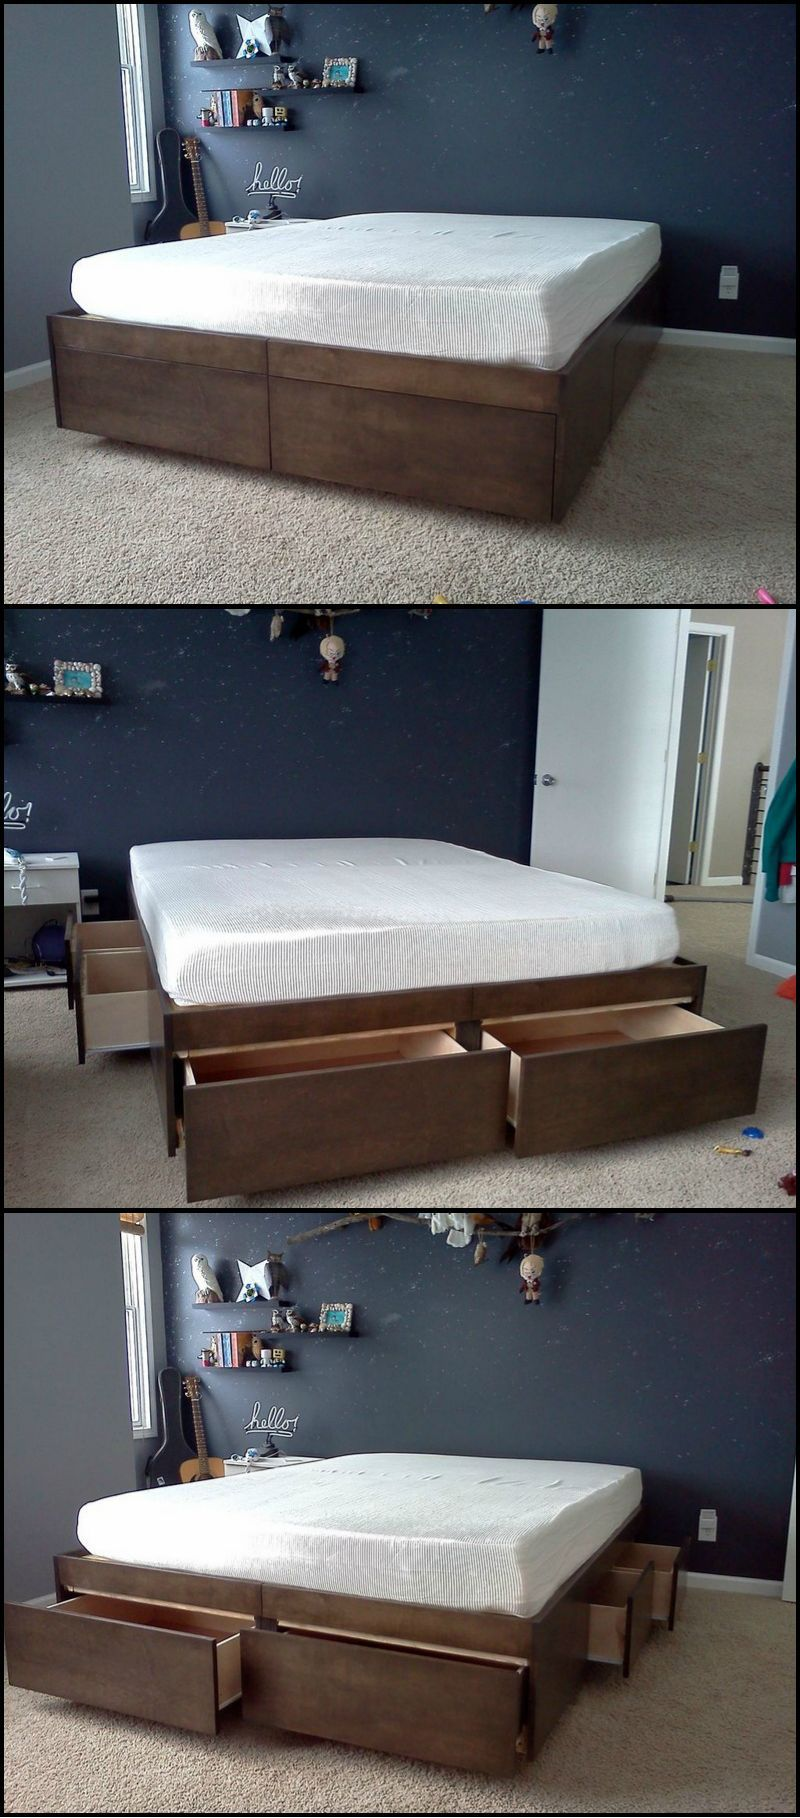 How To Build A Bed With Drawers Do you need more storage